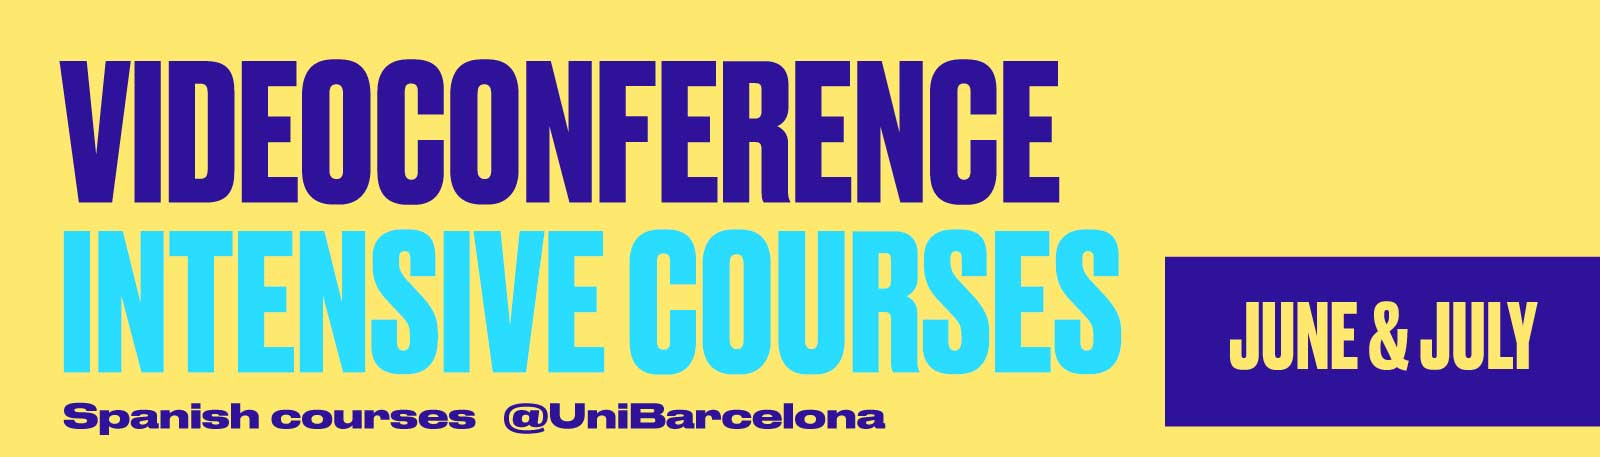 SPANIFY - Intensive Summer Courses by videoconference